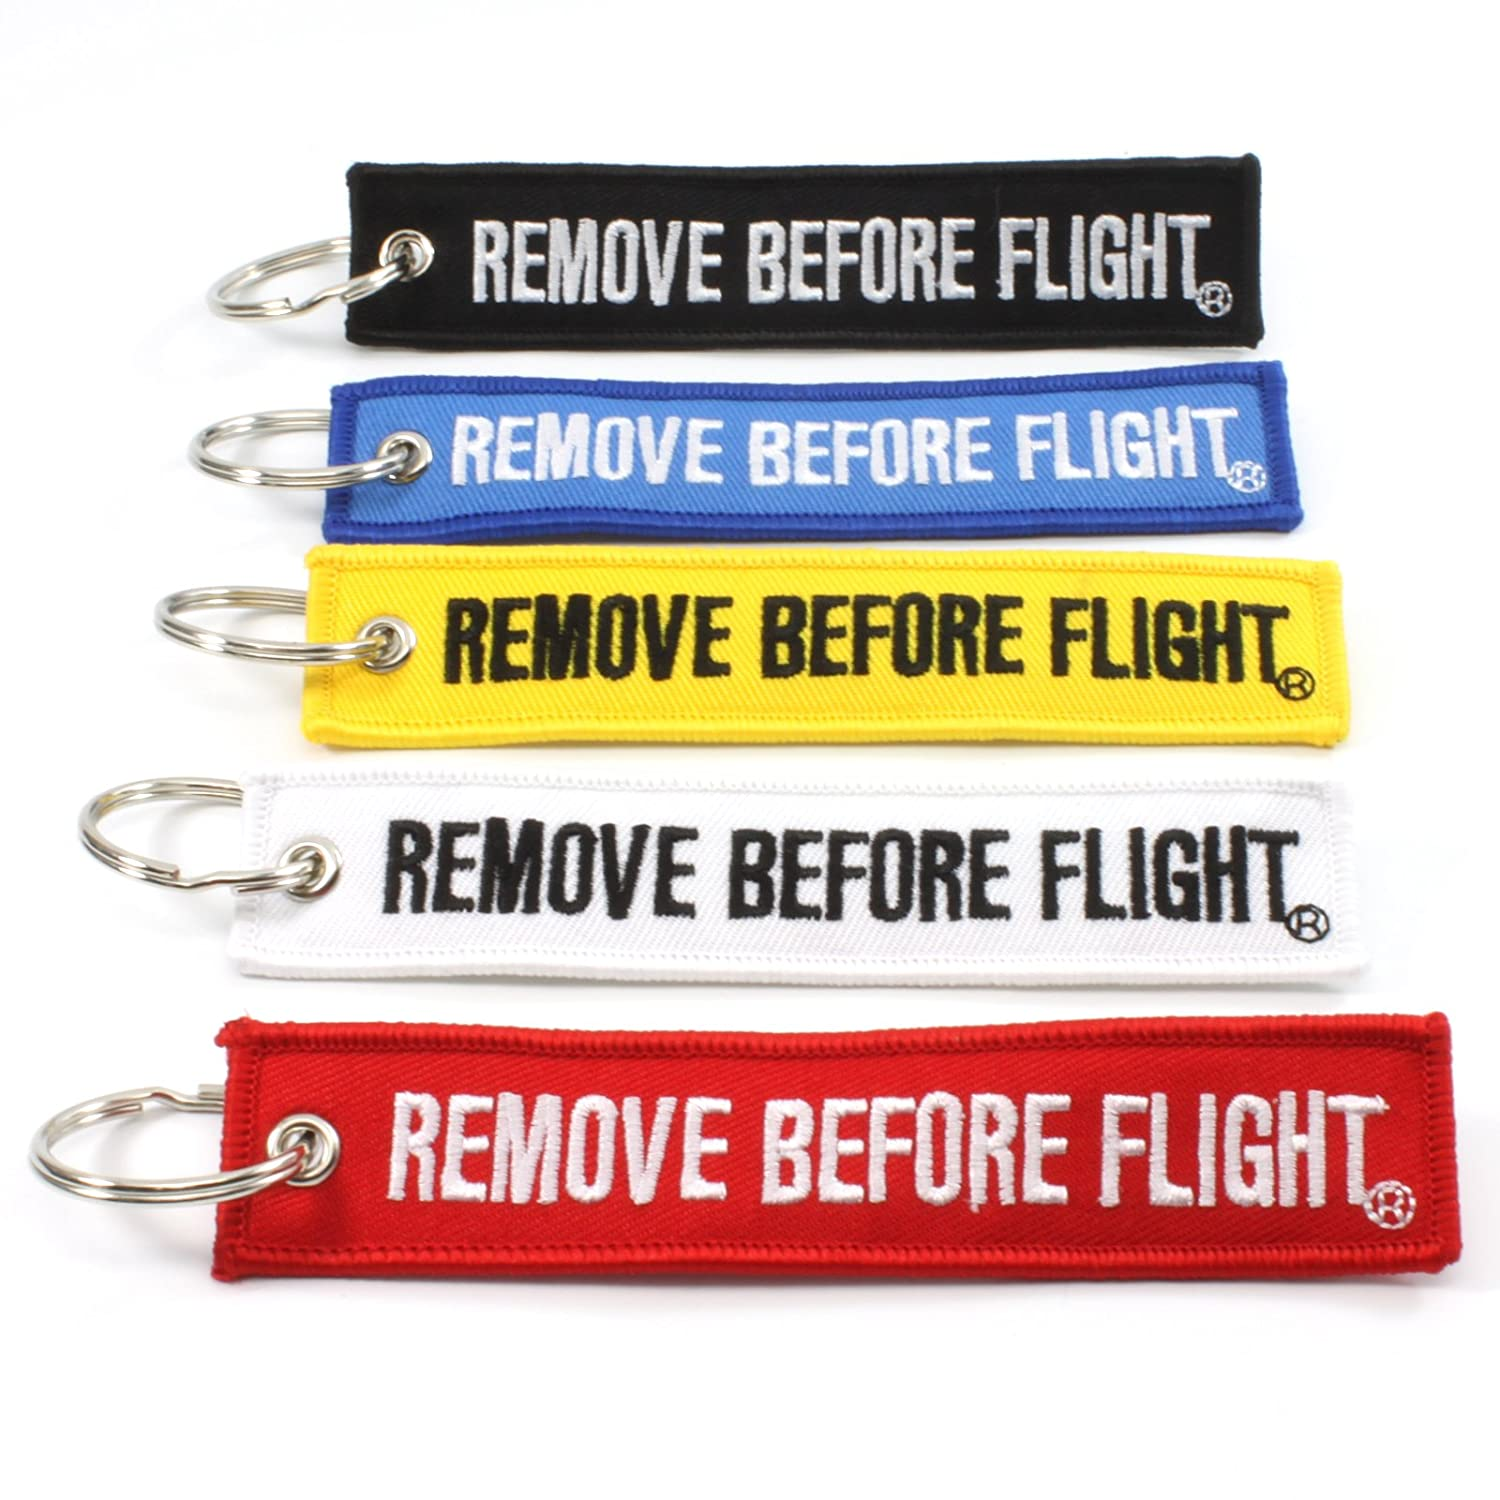 Rotary13B1 Remove Before Flight MULTI COLOR 5 Pack Key Chains 4347617089